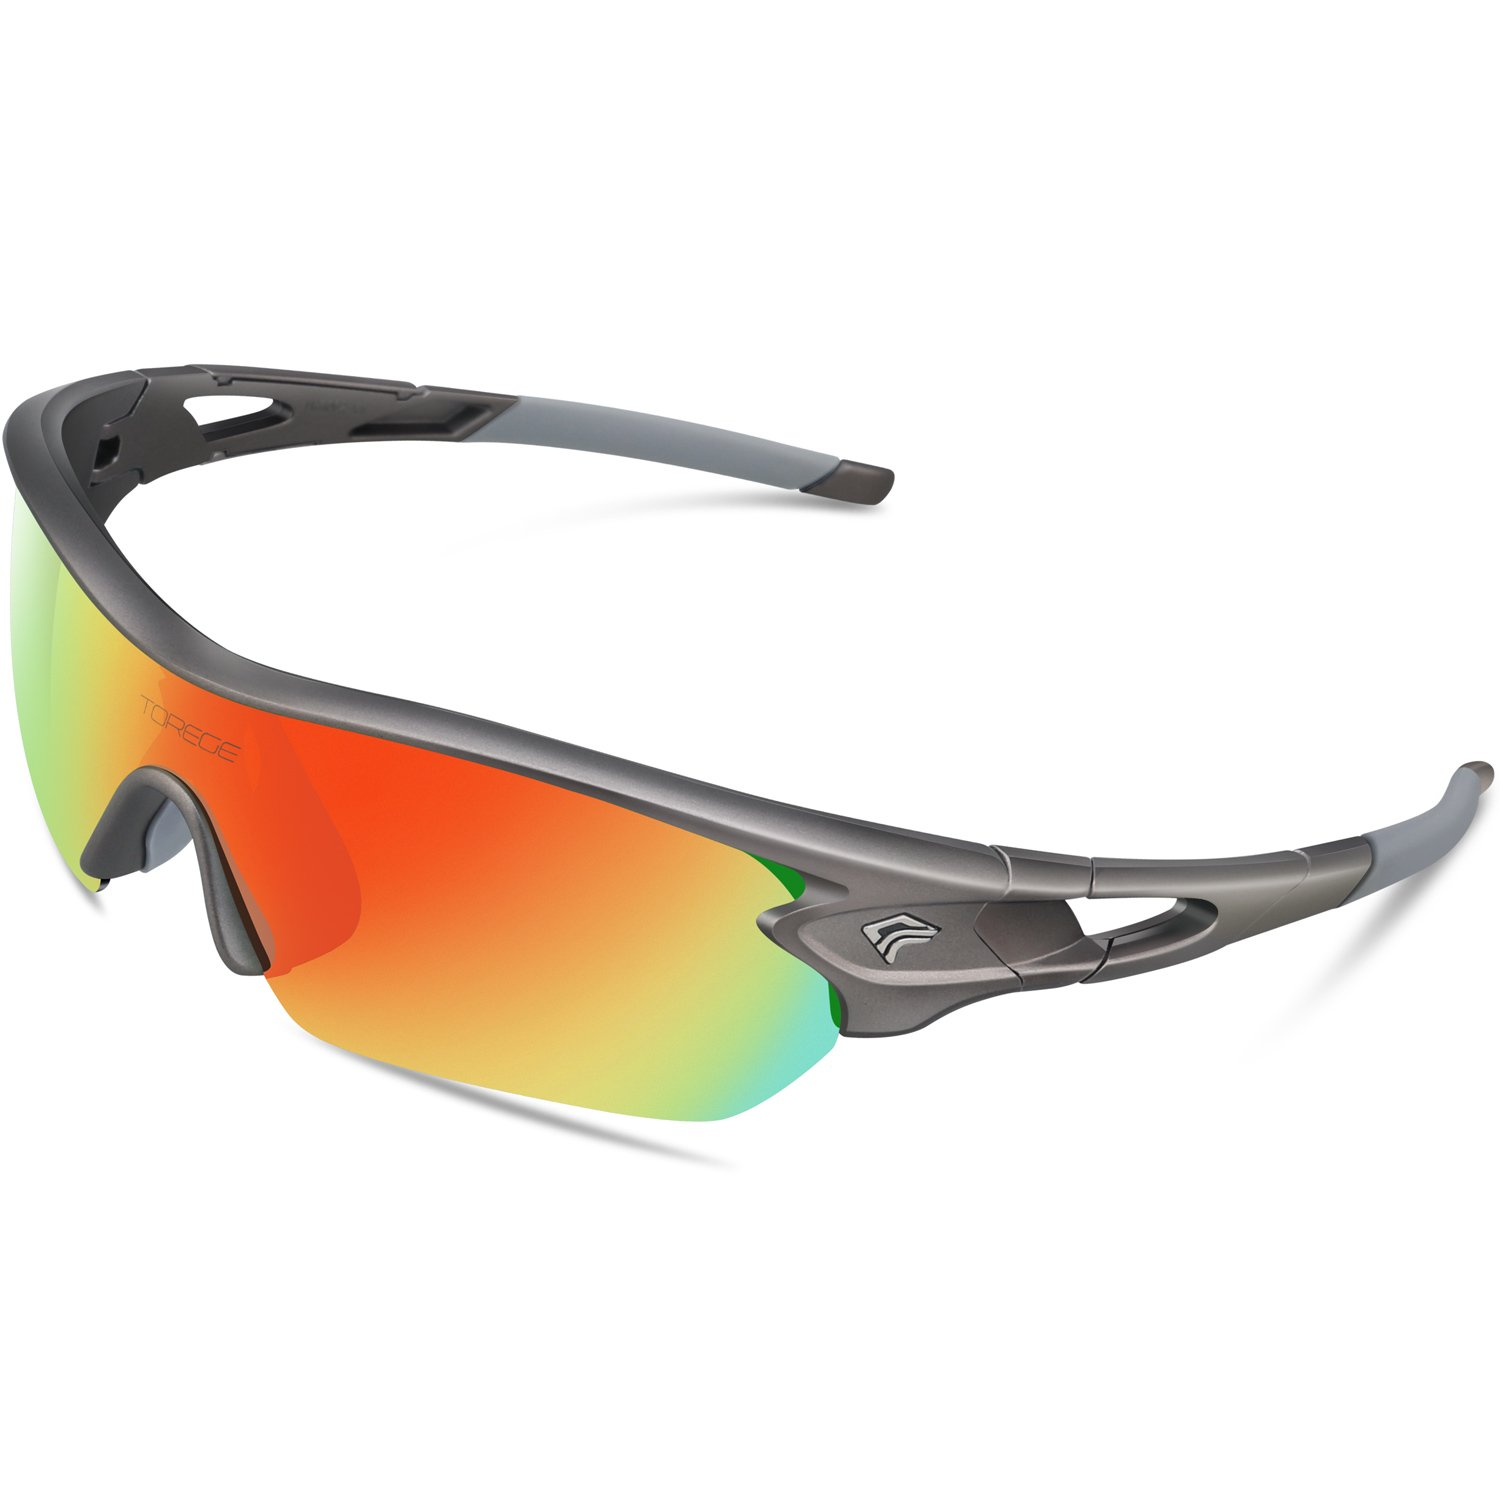 TOREGE Polarized Sports Sunglasses with 5 Interchangeable Lenes for Men Women Cycling Running Driving Fishing Golf Baseball Glasses TR002 (Grey Frame&Rainbow Lens)